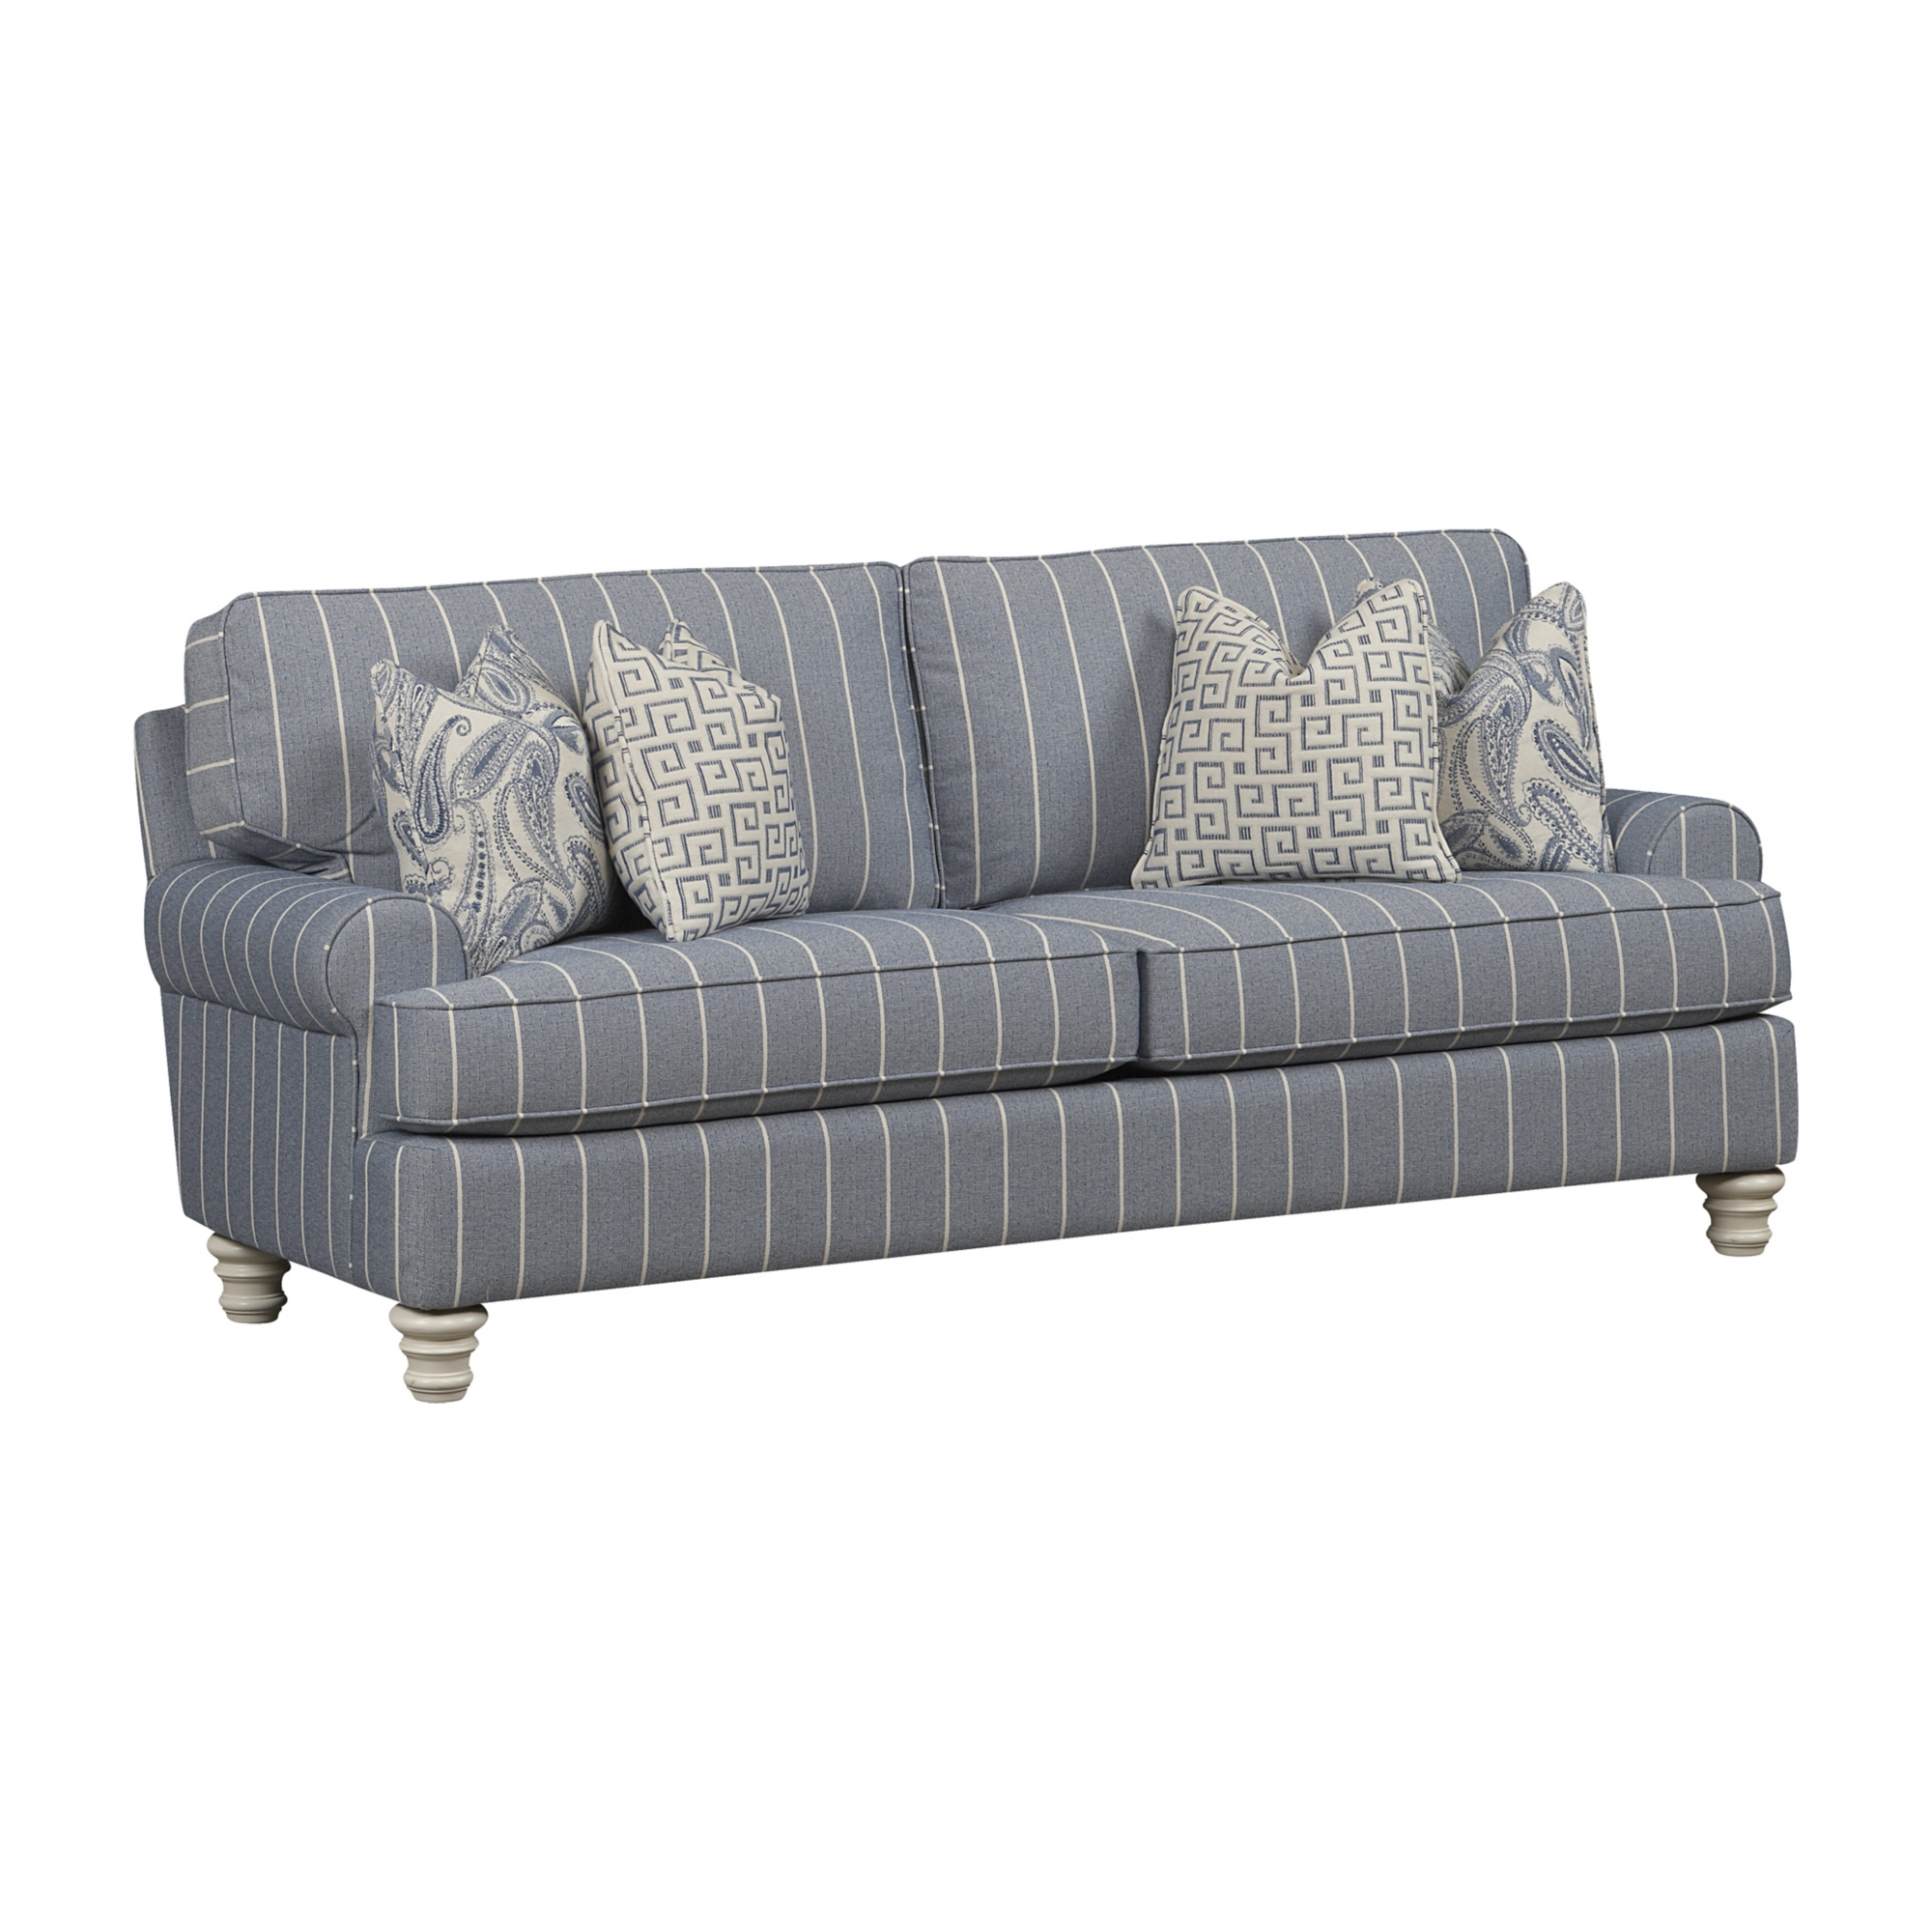 Haverty Sofa Havertys Furniture Galaxy Sofa Looks Awesome